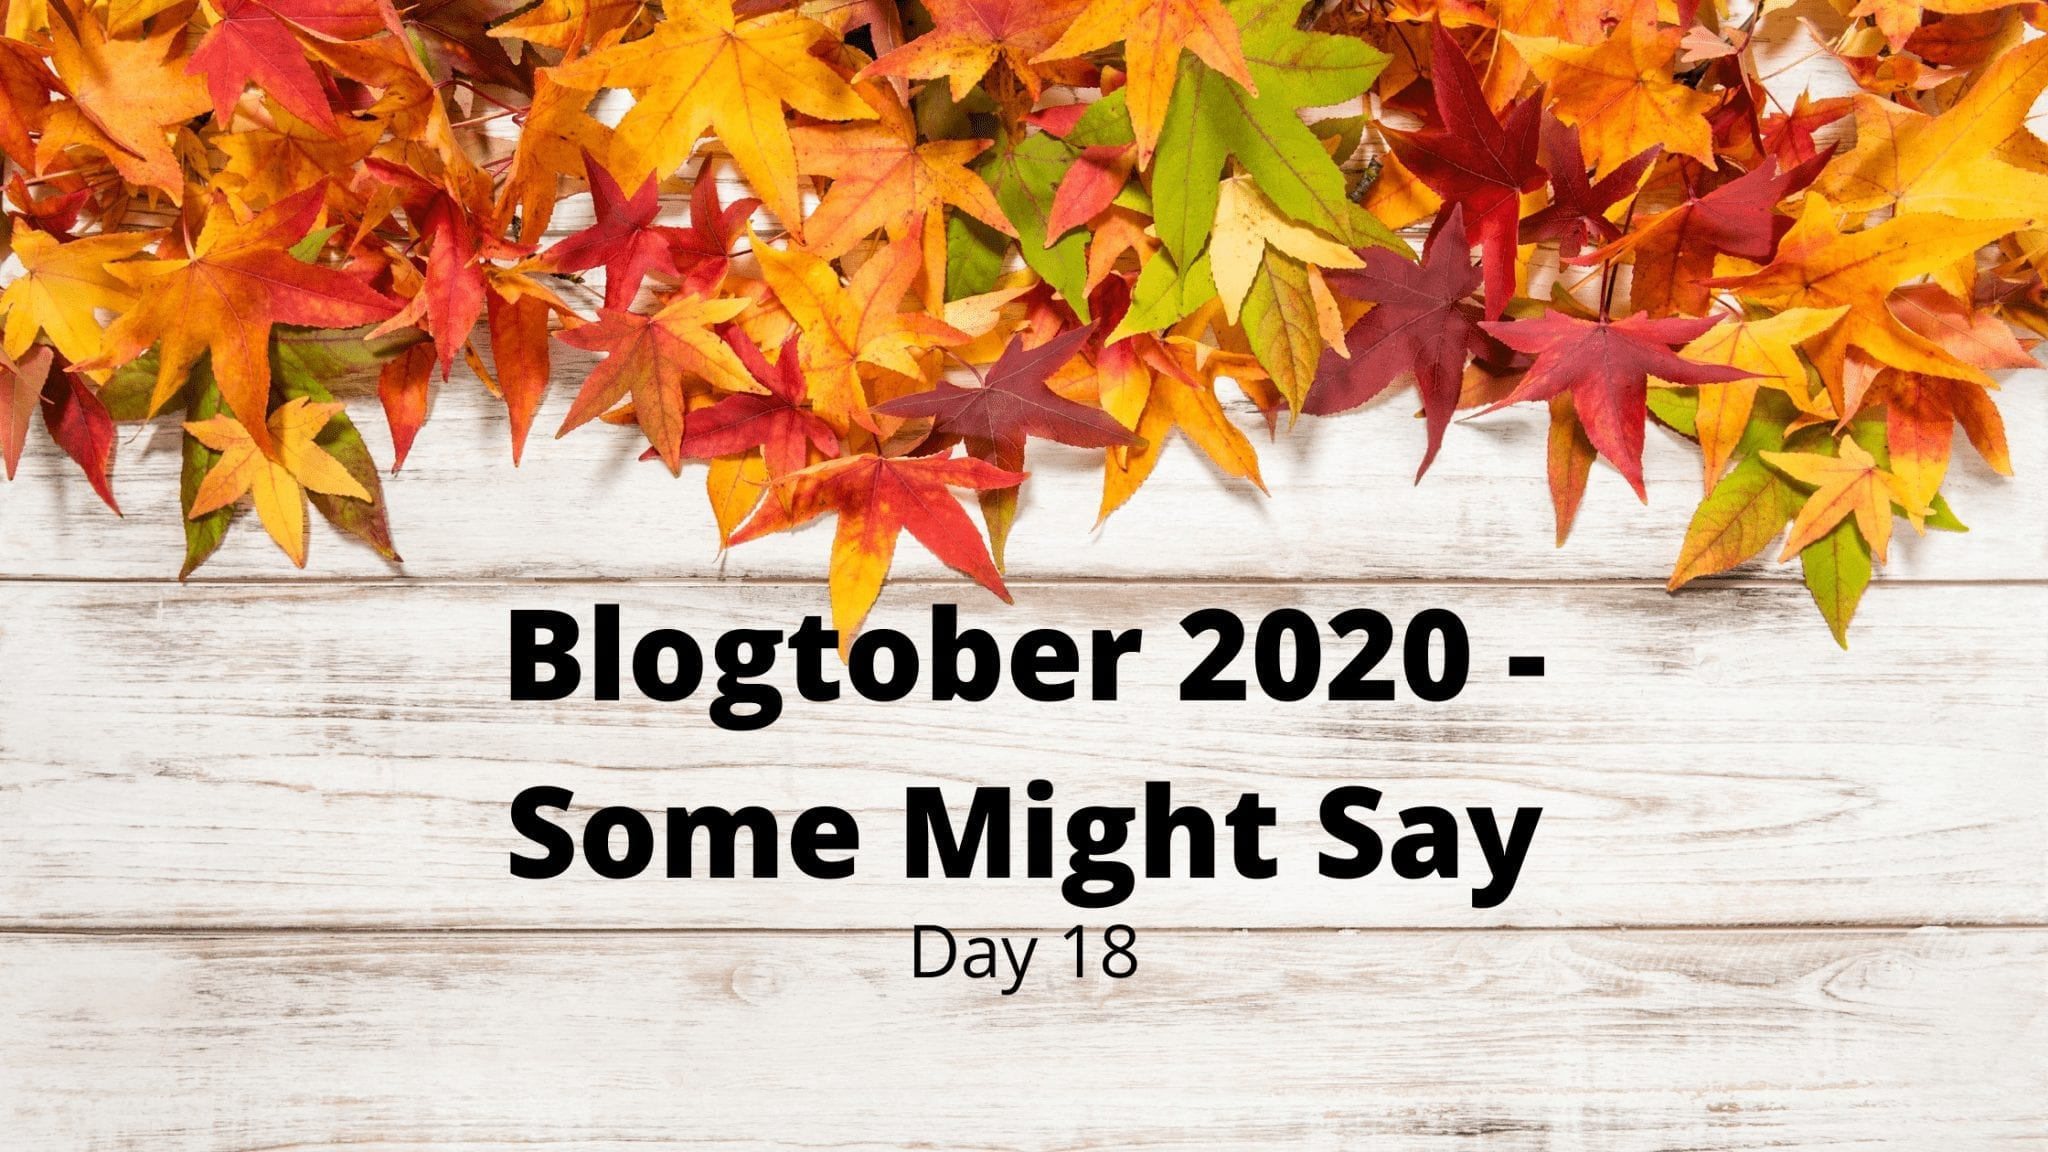 Blogtober 2020 - Some Might Say